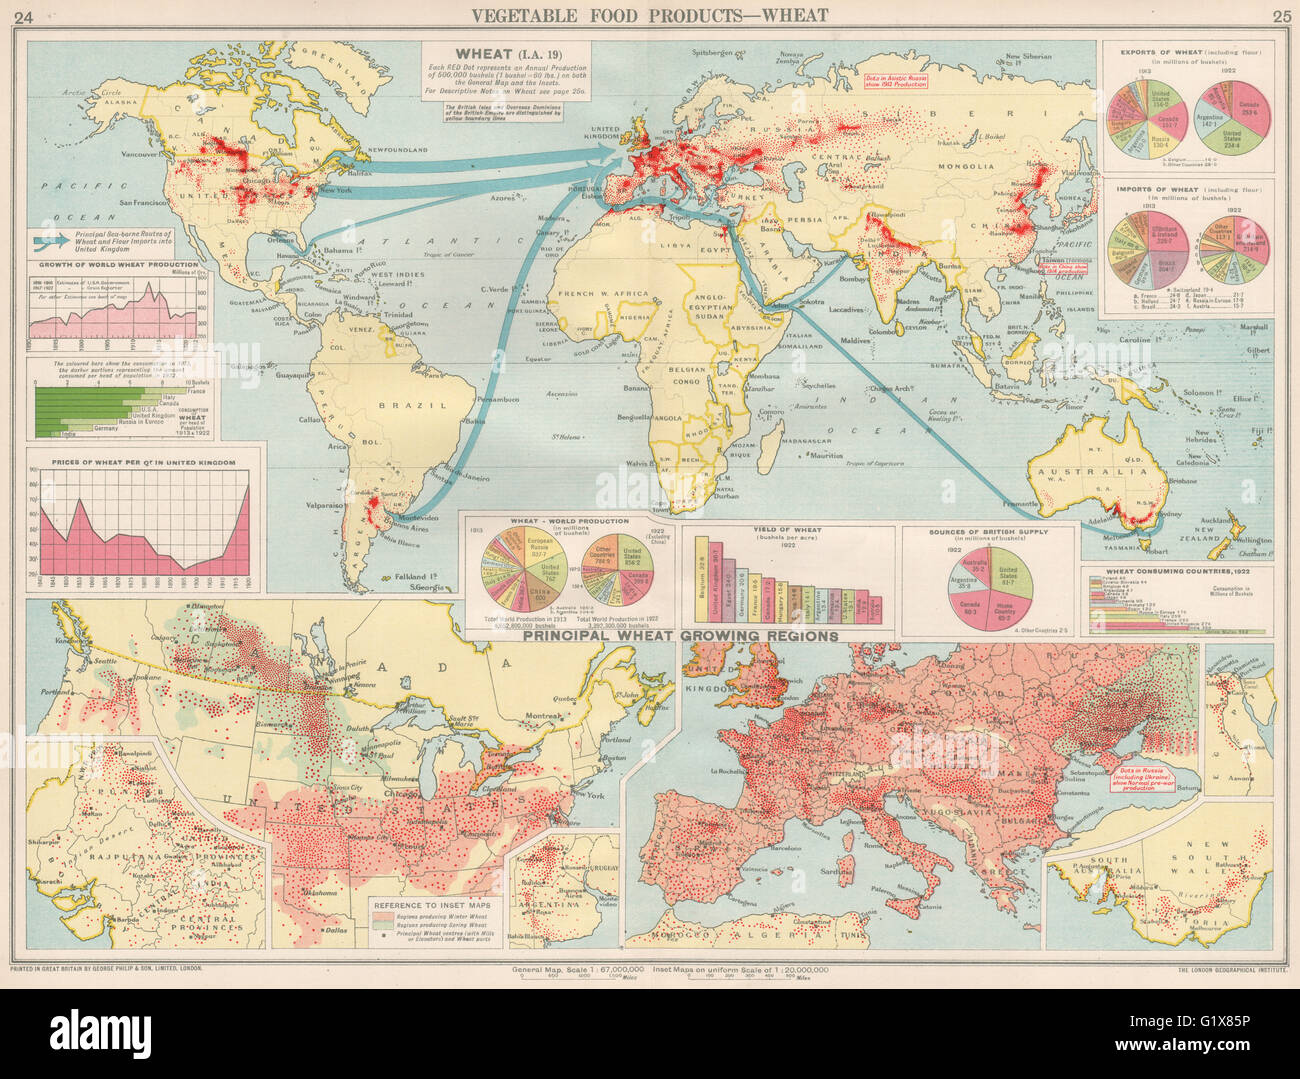 World food production wheat united states europe argentina food production wheat united states europe argentina canada 1925 map sciox Image collections